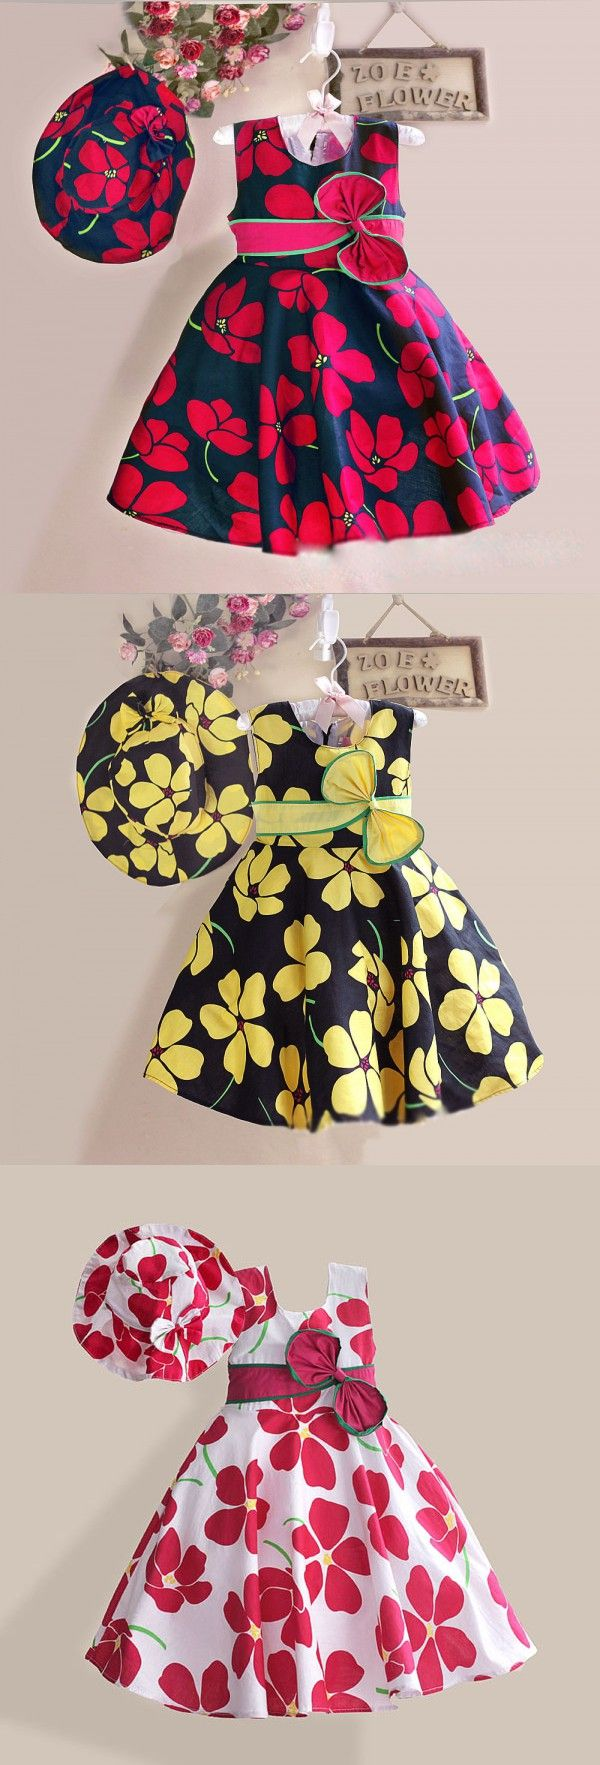 959b2c722b5a New Summer Baby Girls Floral Dress with cap European Style Designer Bow  Children Dresses Kids Clothes 3-8Y